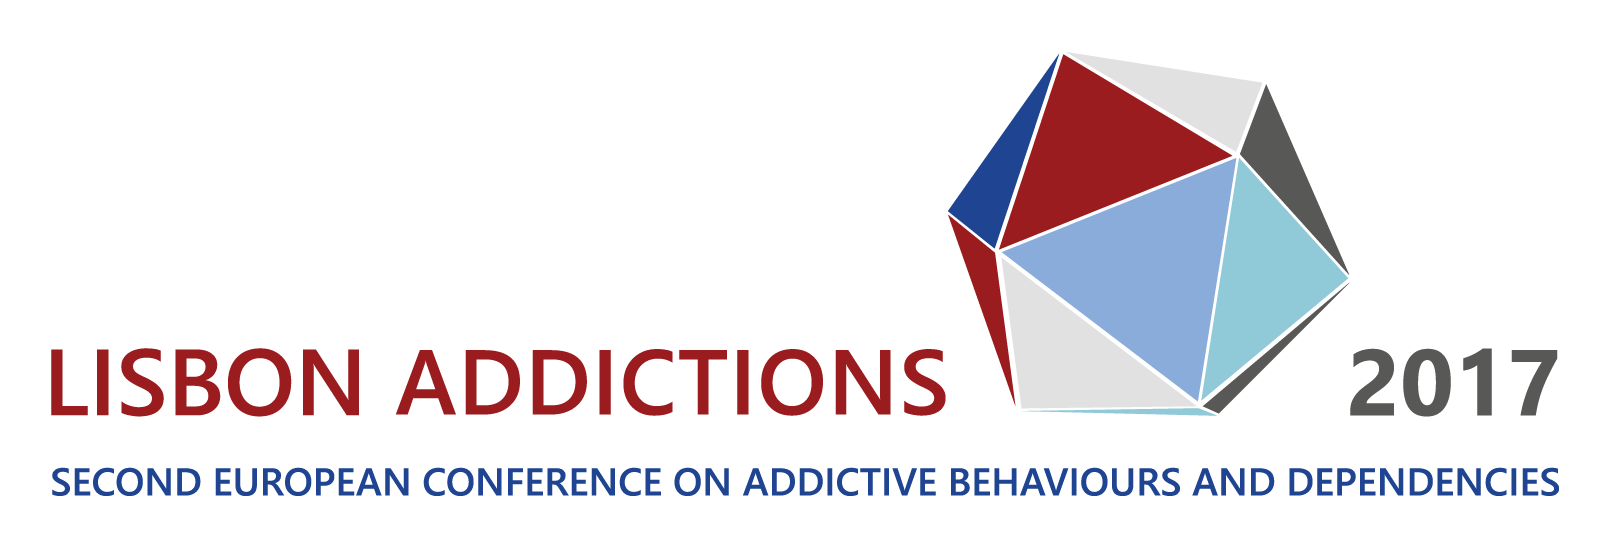 Lisbon Addictions 2017